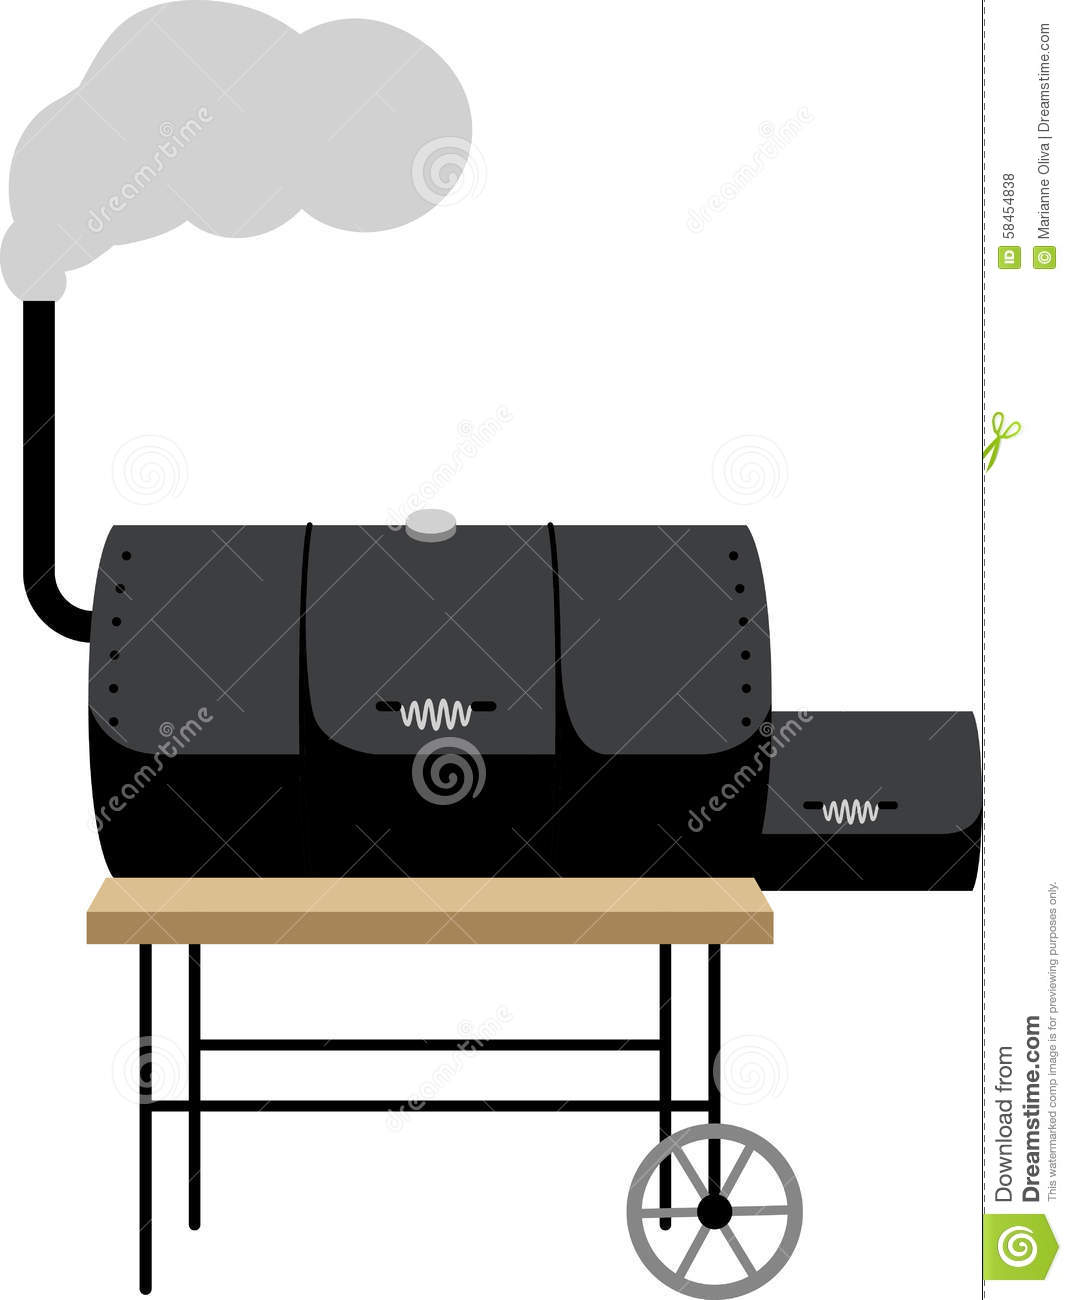 Have a great cookout with a smoker on a grillers apron.